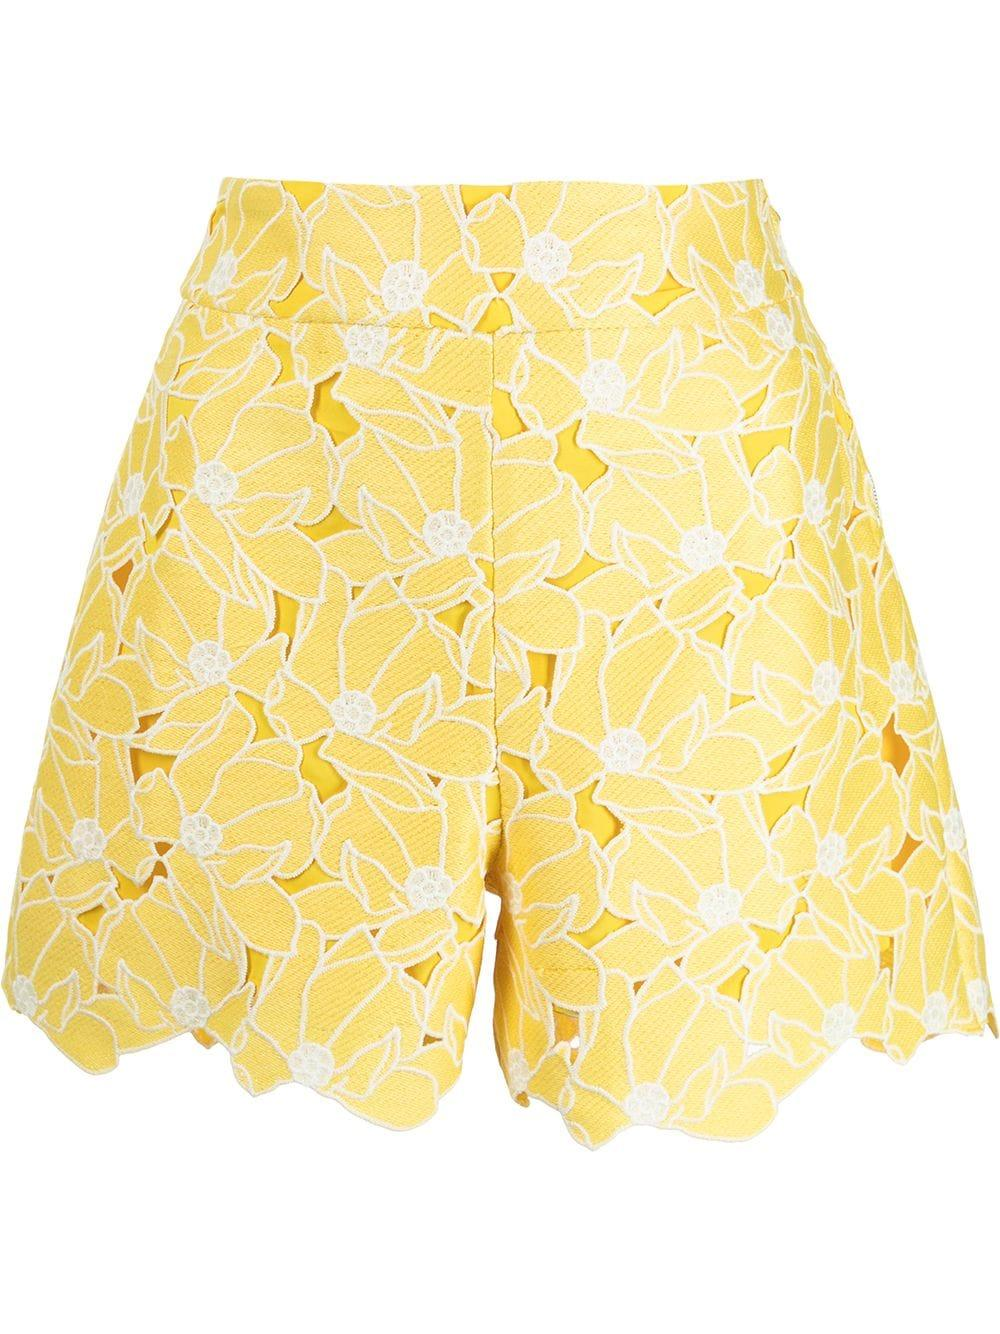 Marley Tropical Lily Cut-Out Shorts